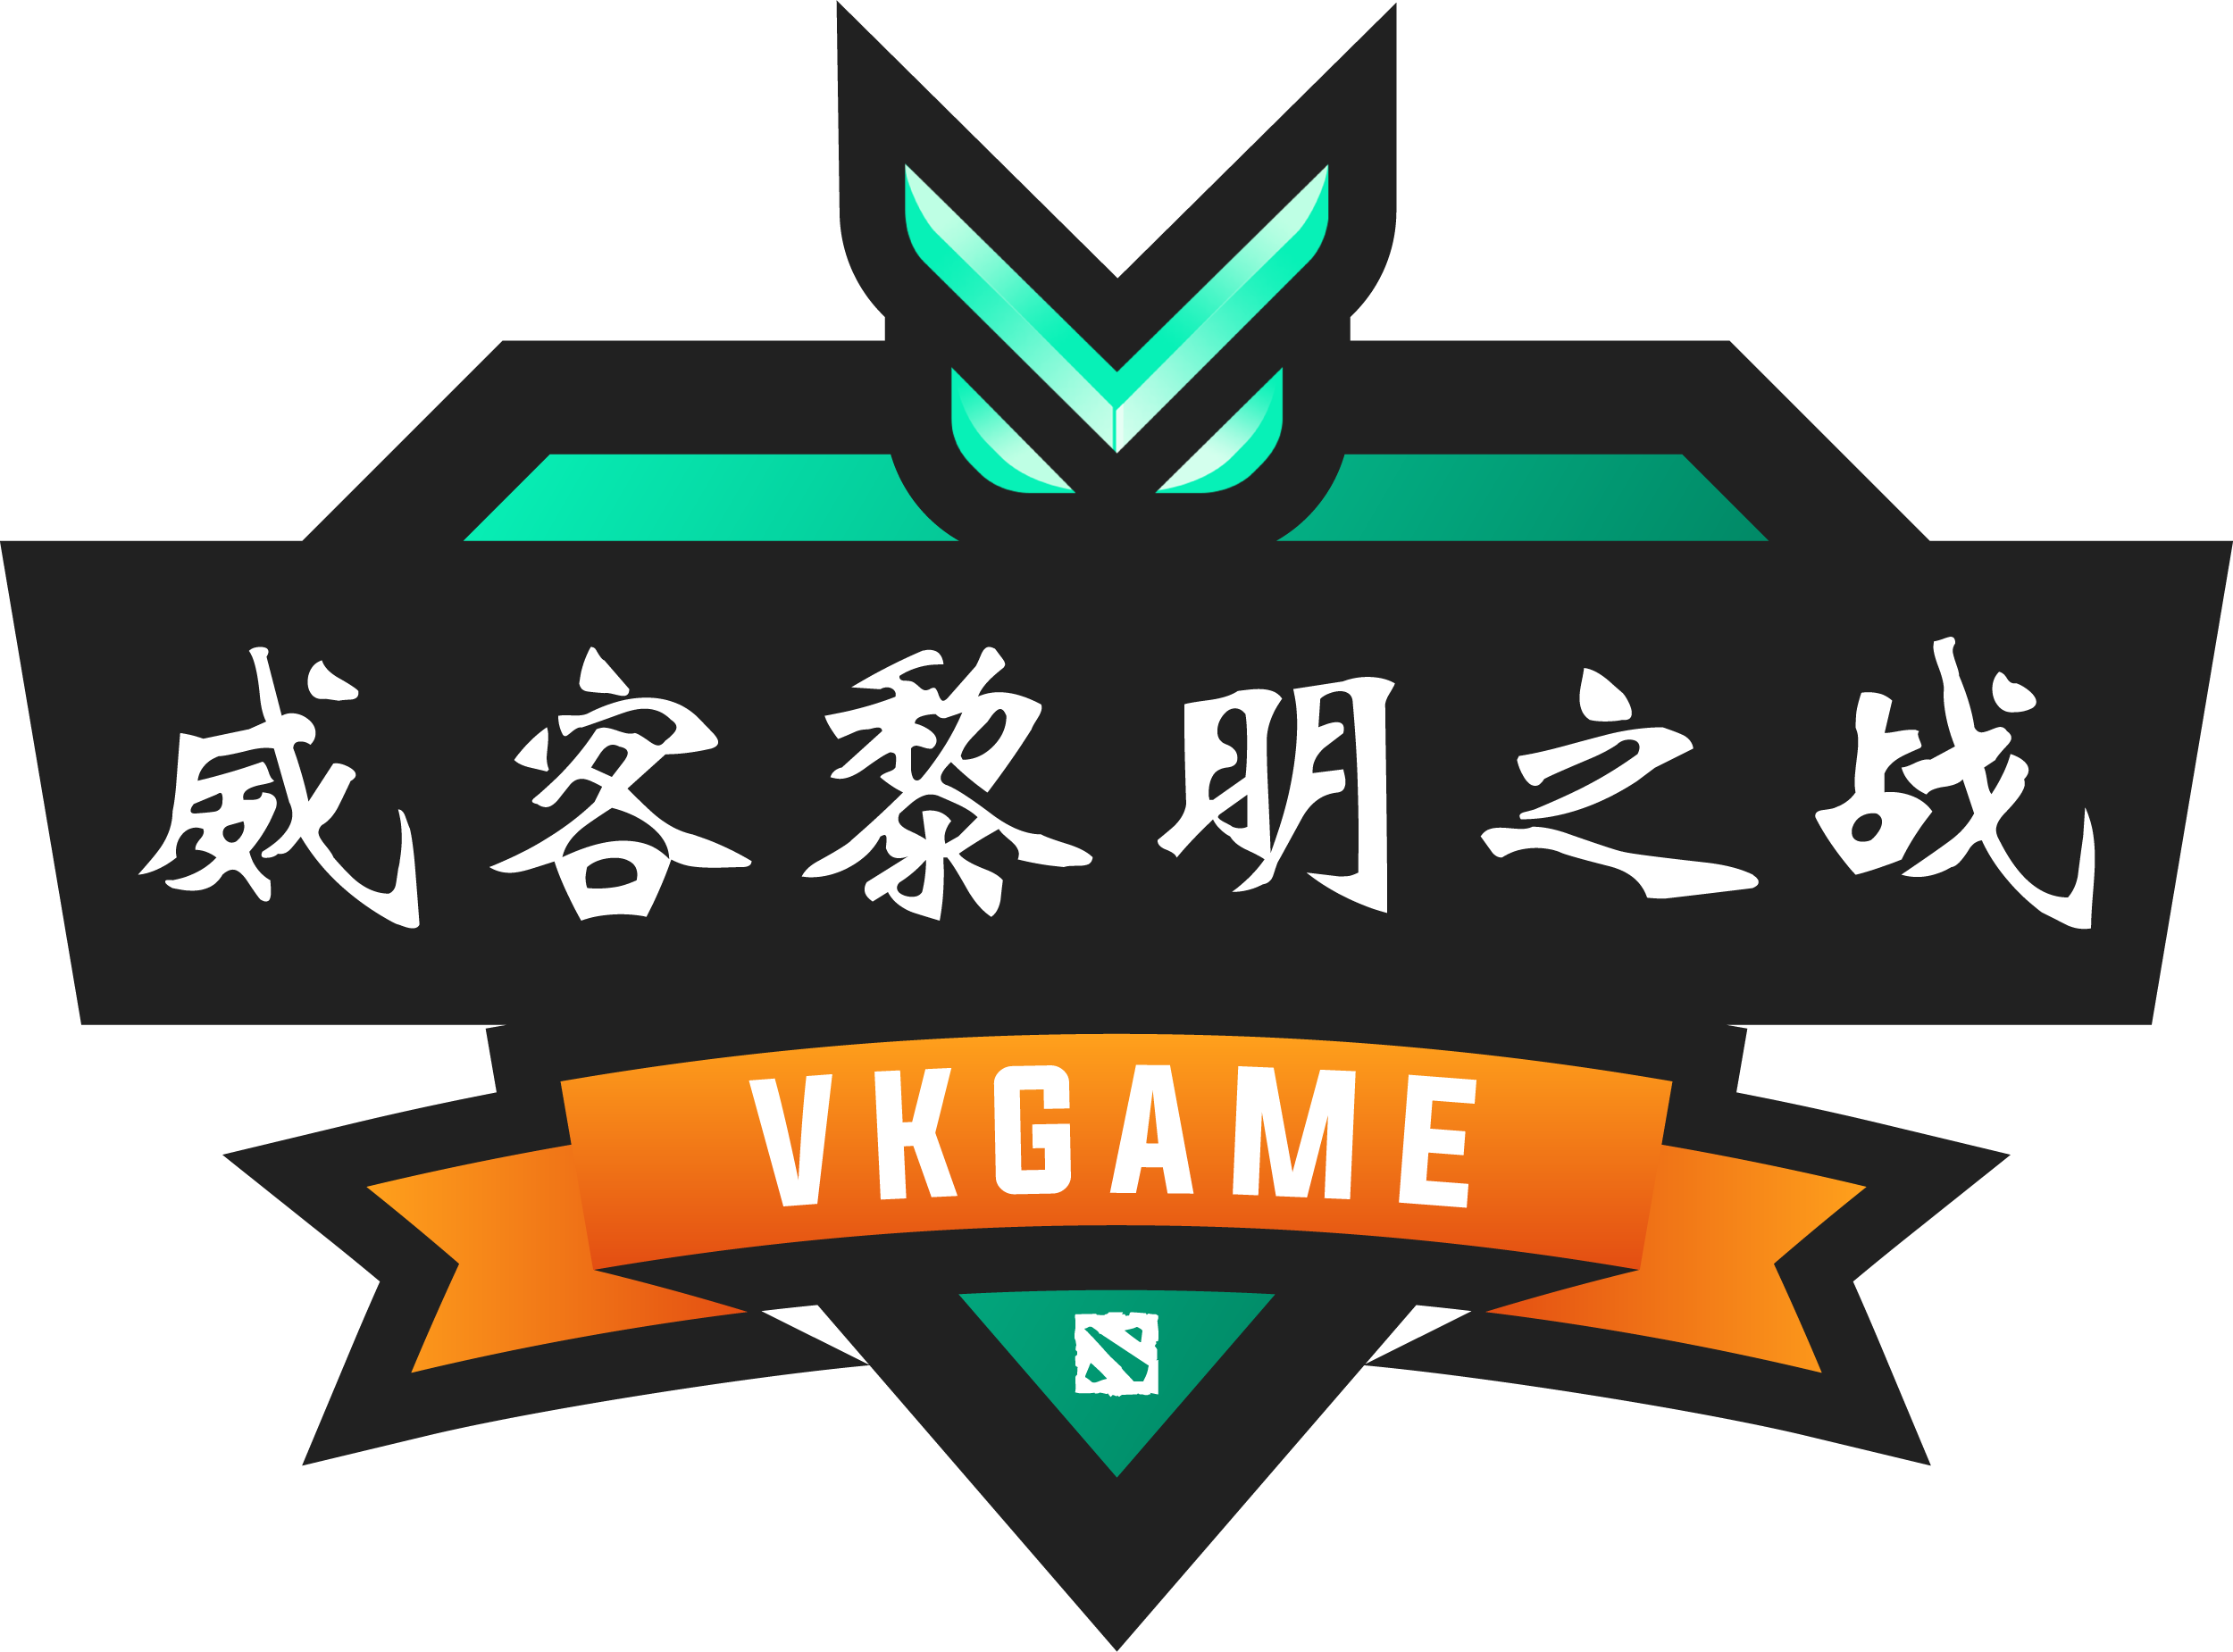 VKGAME BATTLE OF DAWN Dota 2 Series